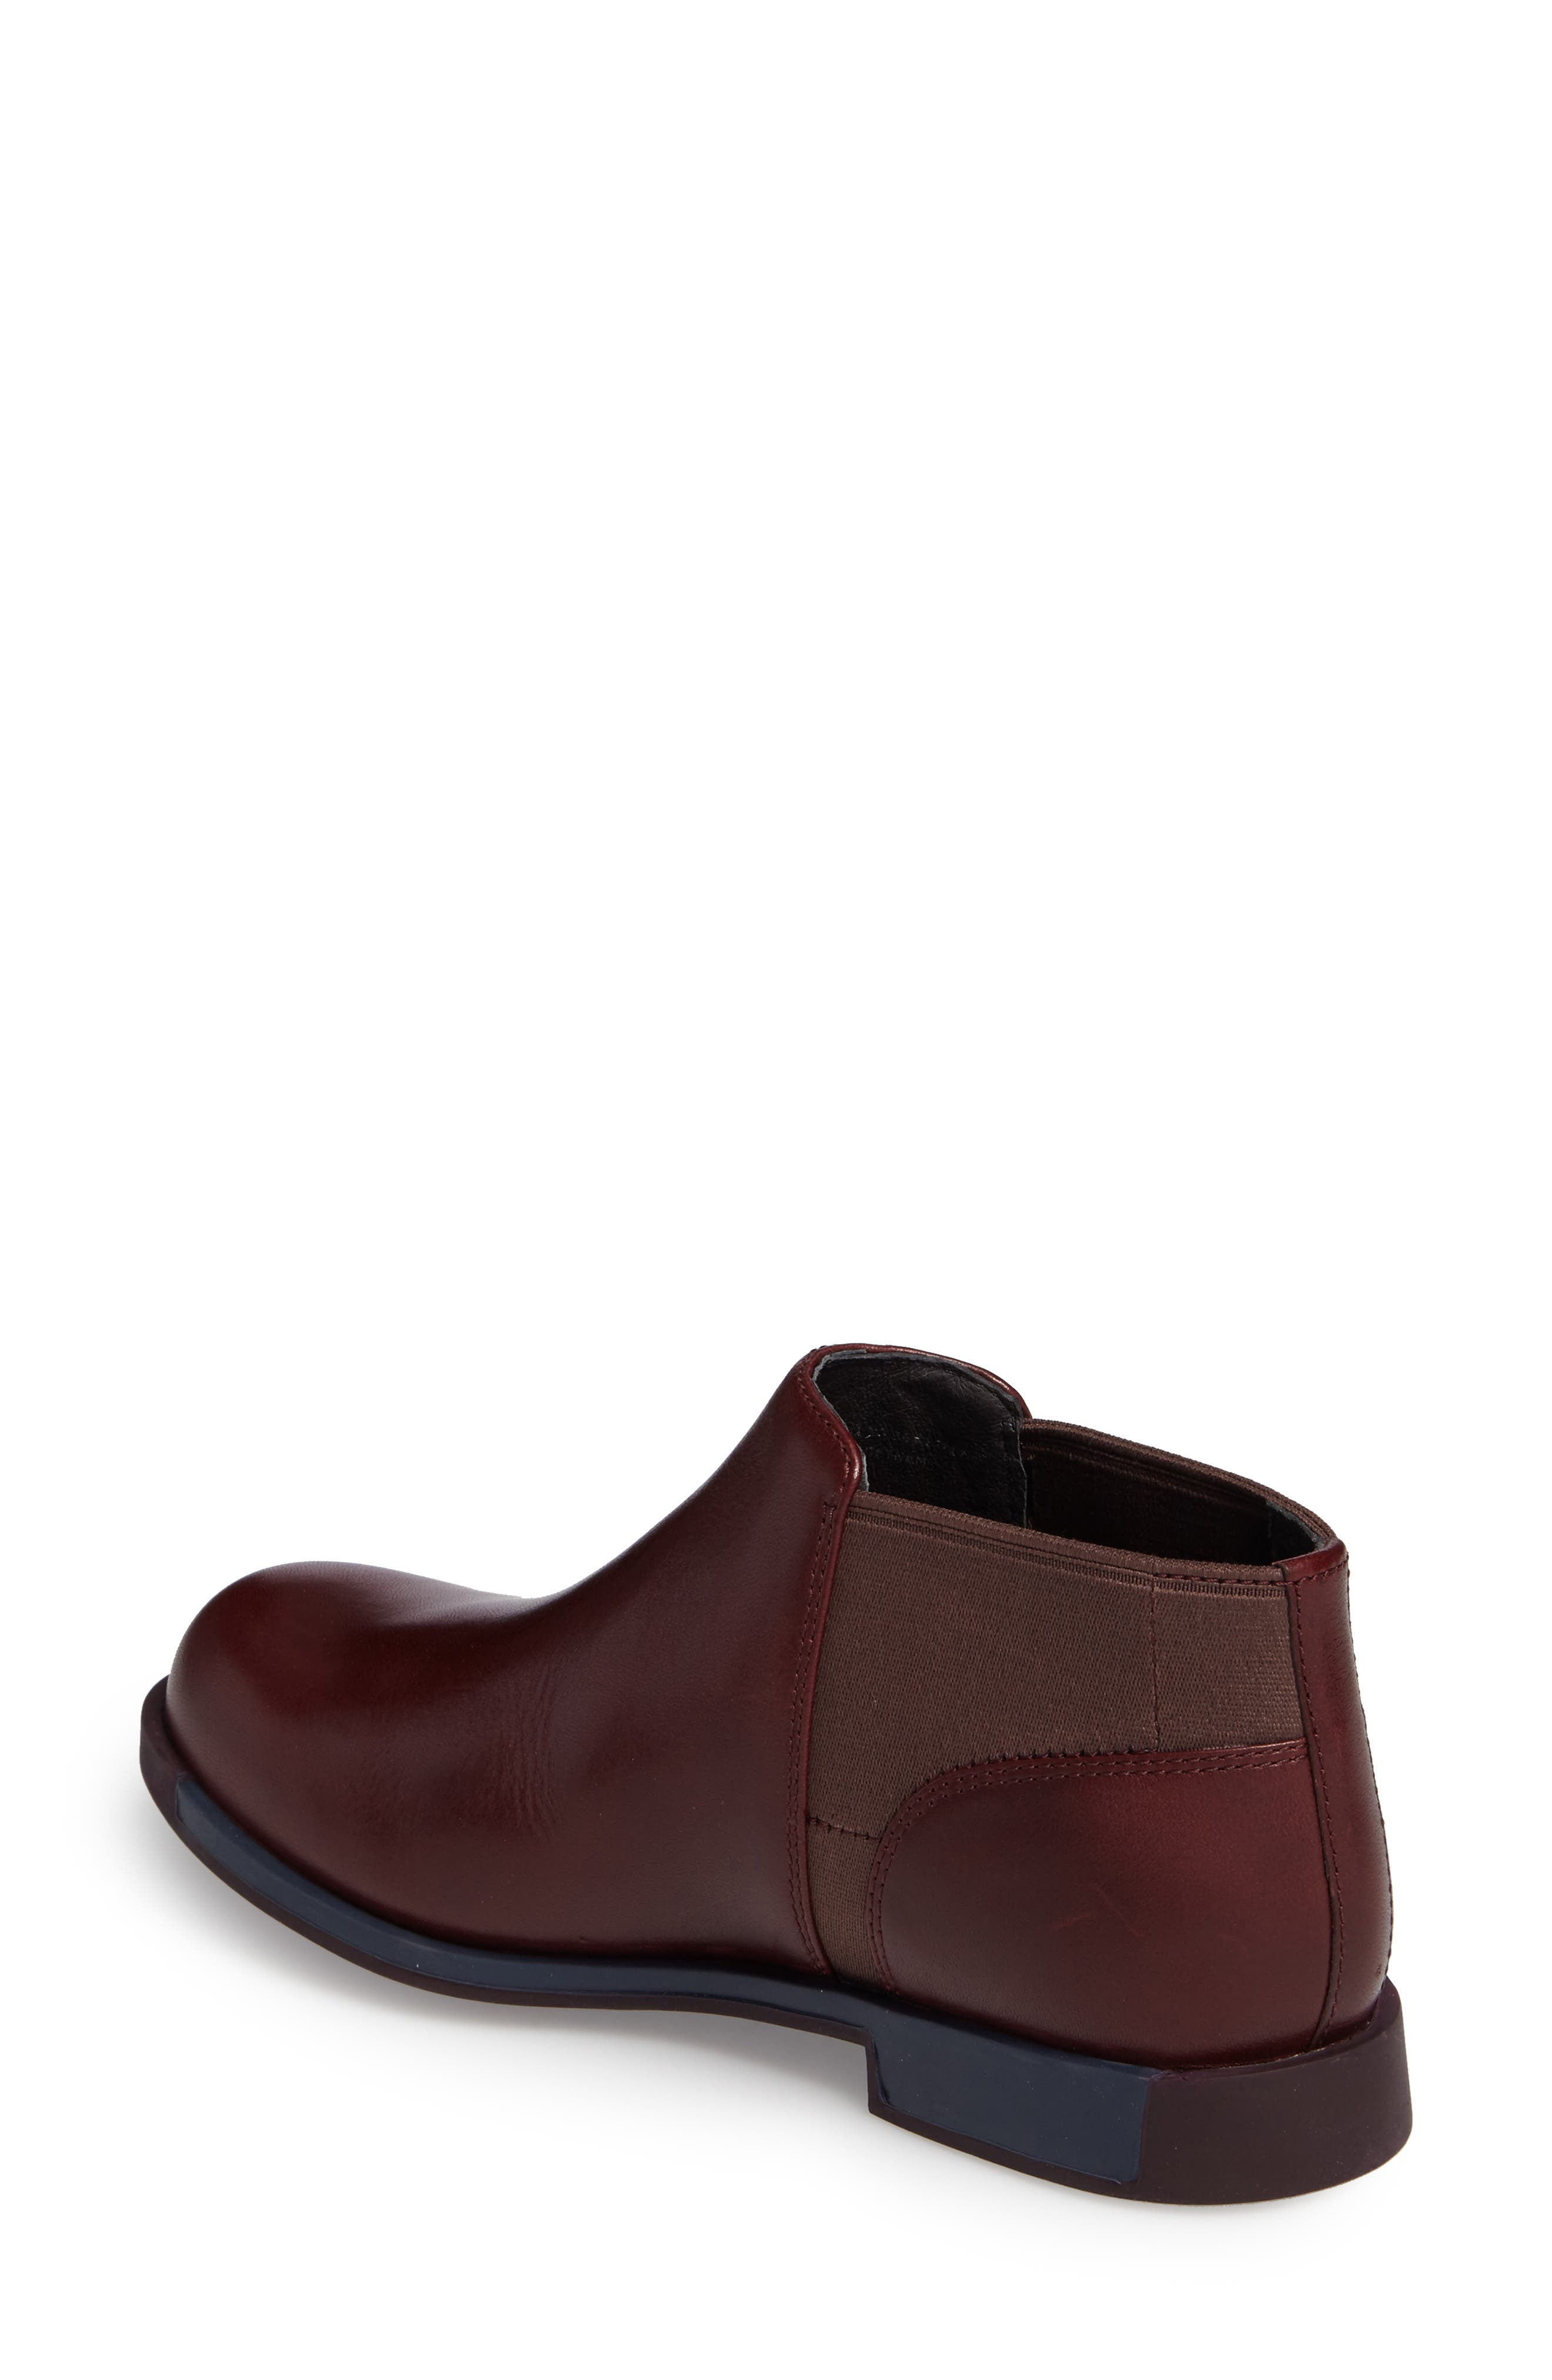 CAMPER,                             Bowie Chelsea Boot,                             Alternate thumbnail 2, color,                             600